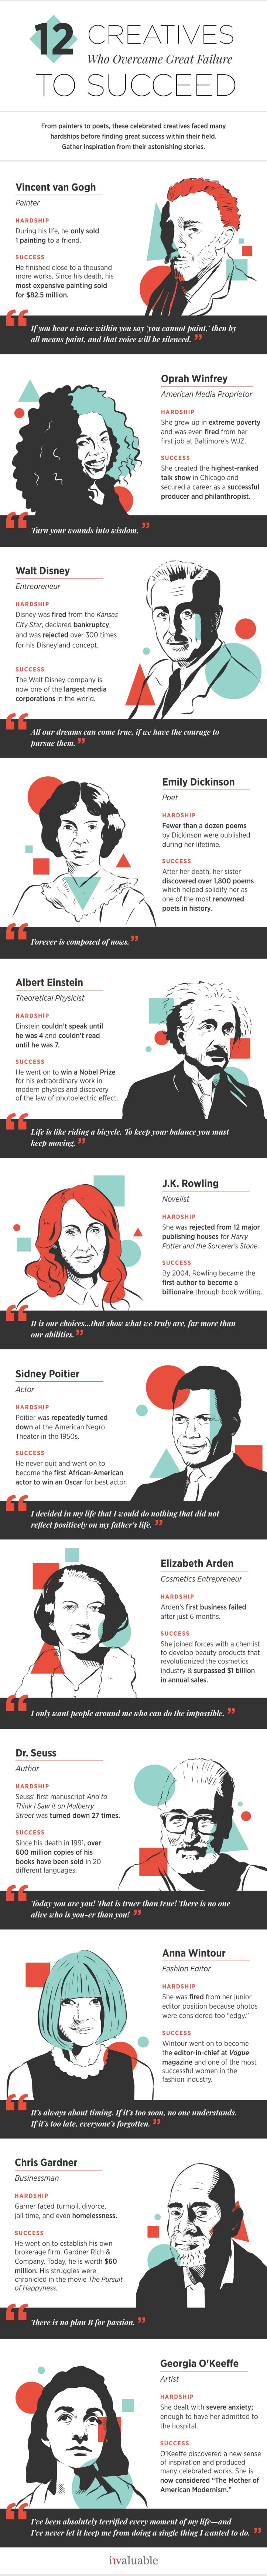 How 12 Artists and Creatives Faced (and Overcame) Failure #infographic